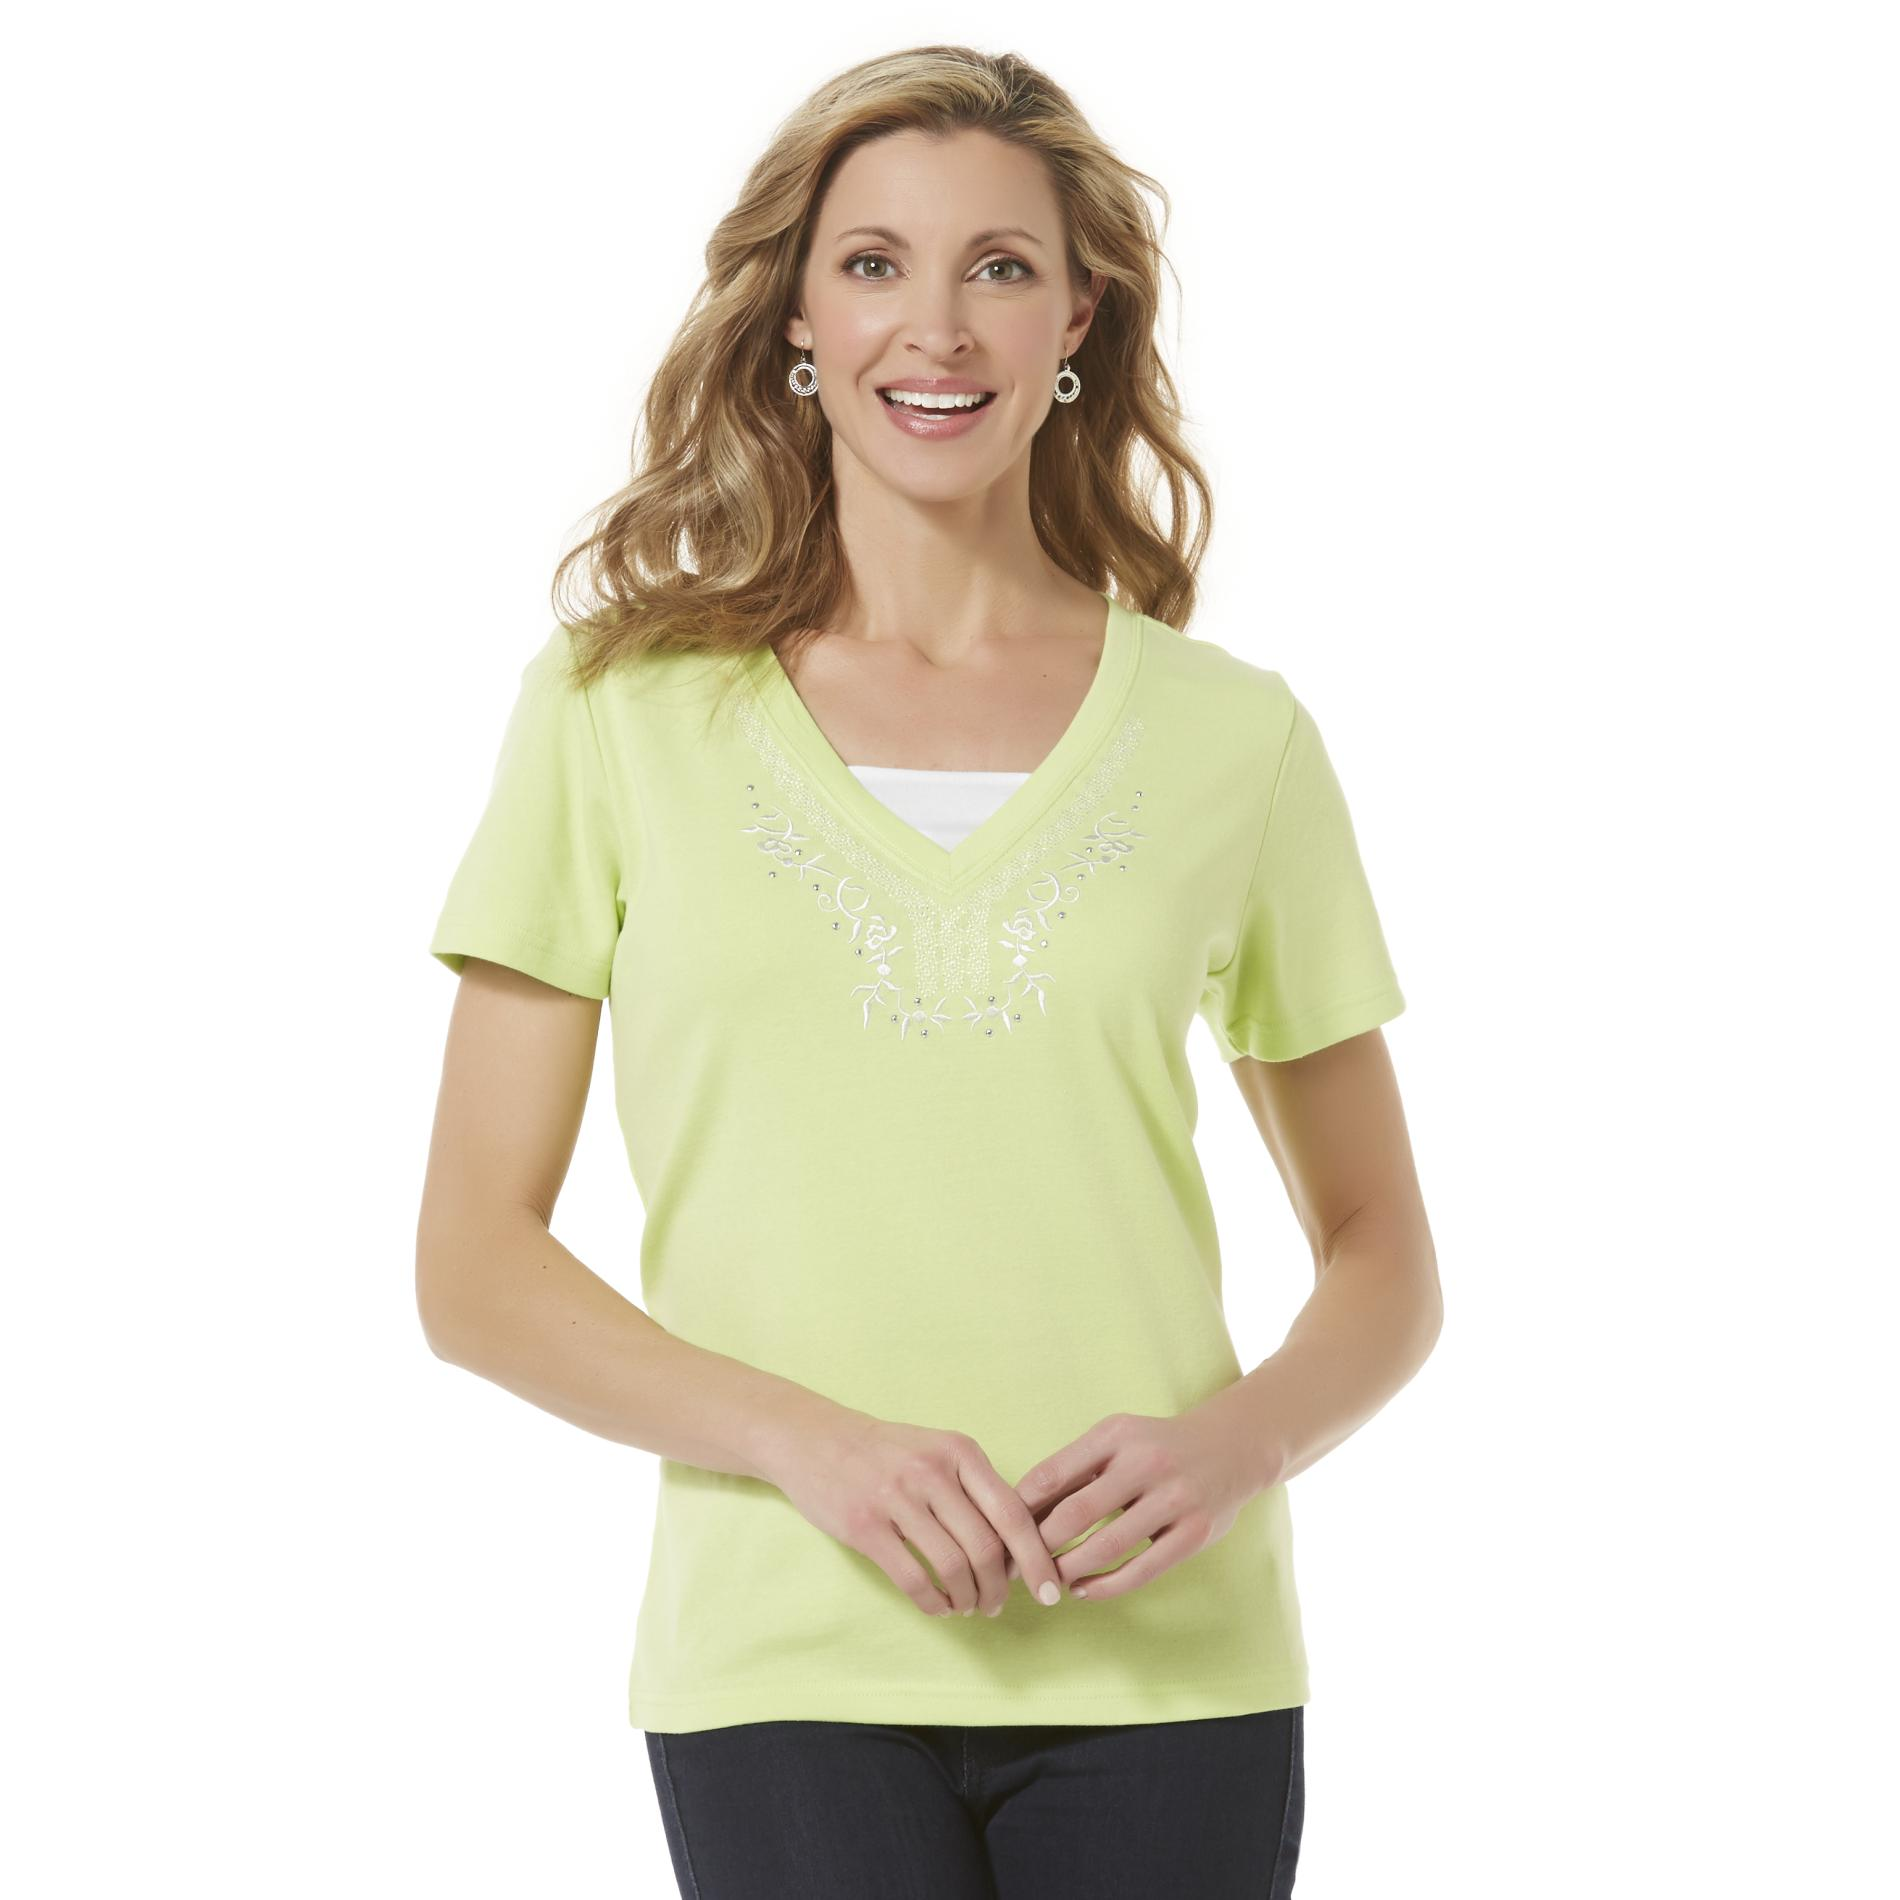 Basic Editions Women's Embellished T-Shirt